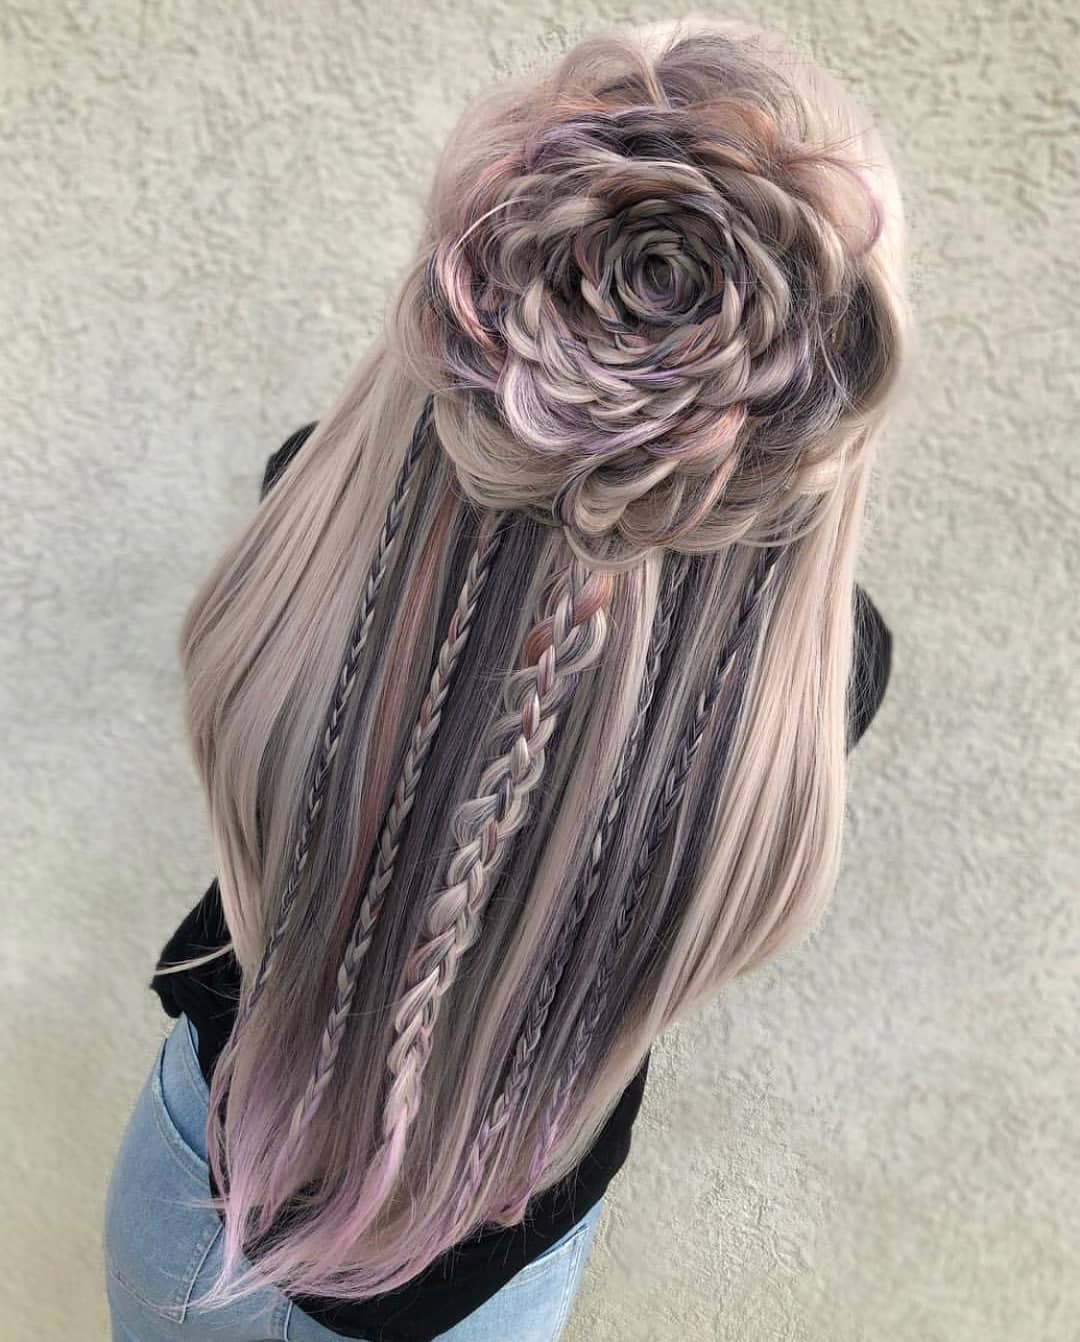 10 Amazing Braided Hairstyles for Long Hair - 2019 Women Hair Styles